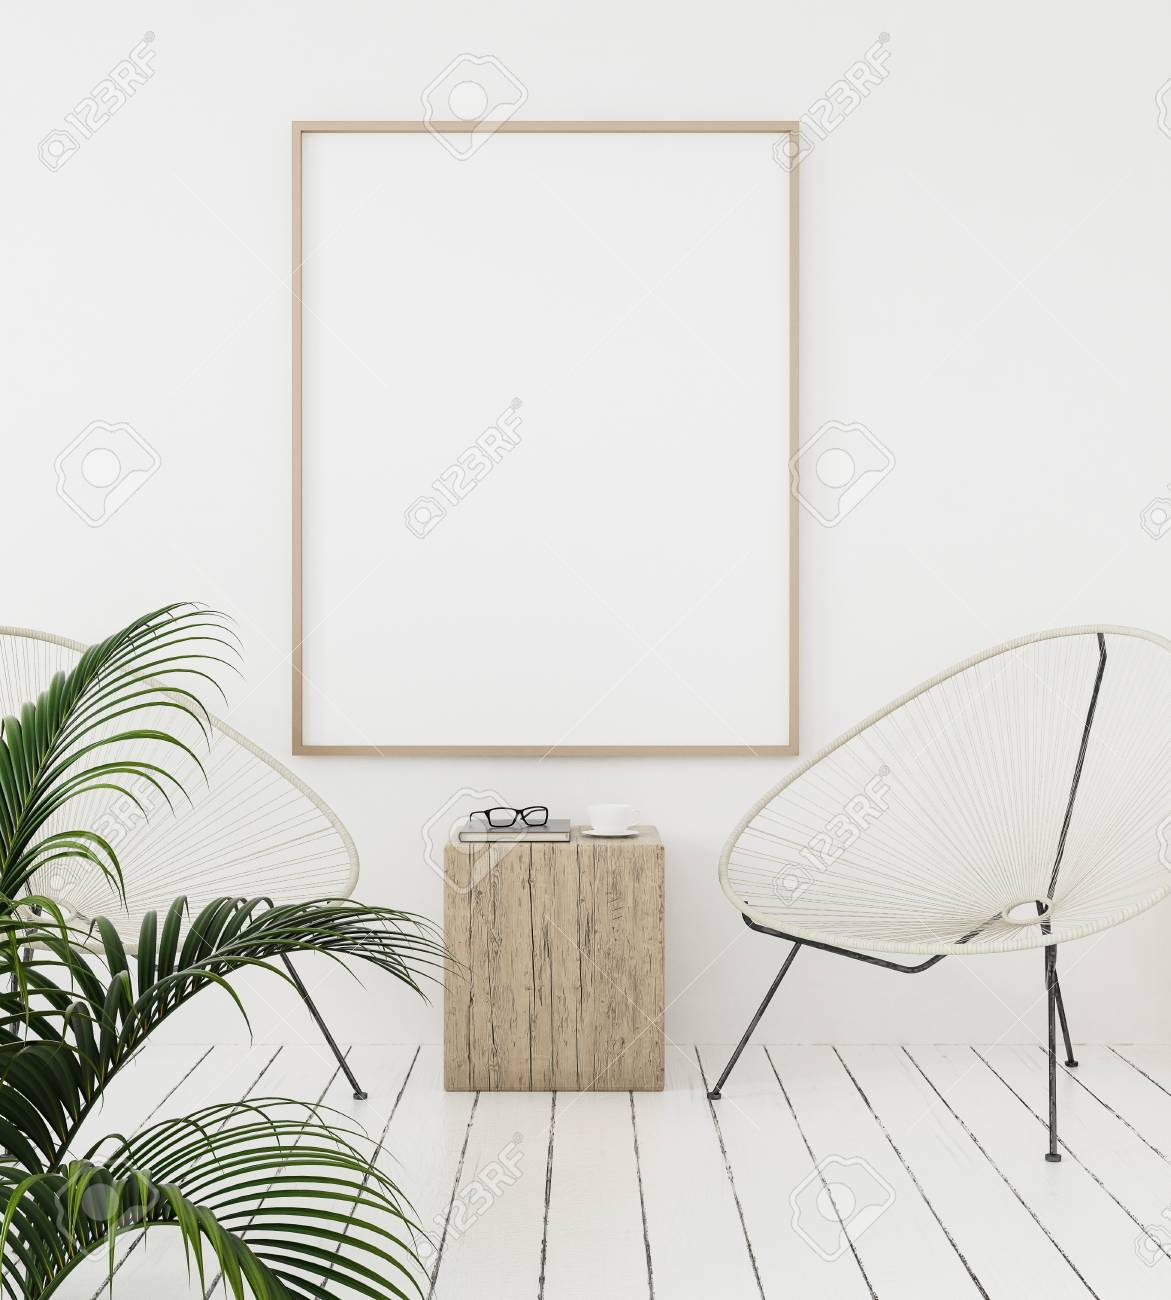 Mock-up poster frame on wall with minimal decor, Scandinavian style, 3d render - 105660985